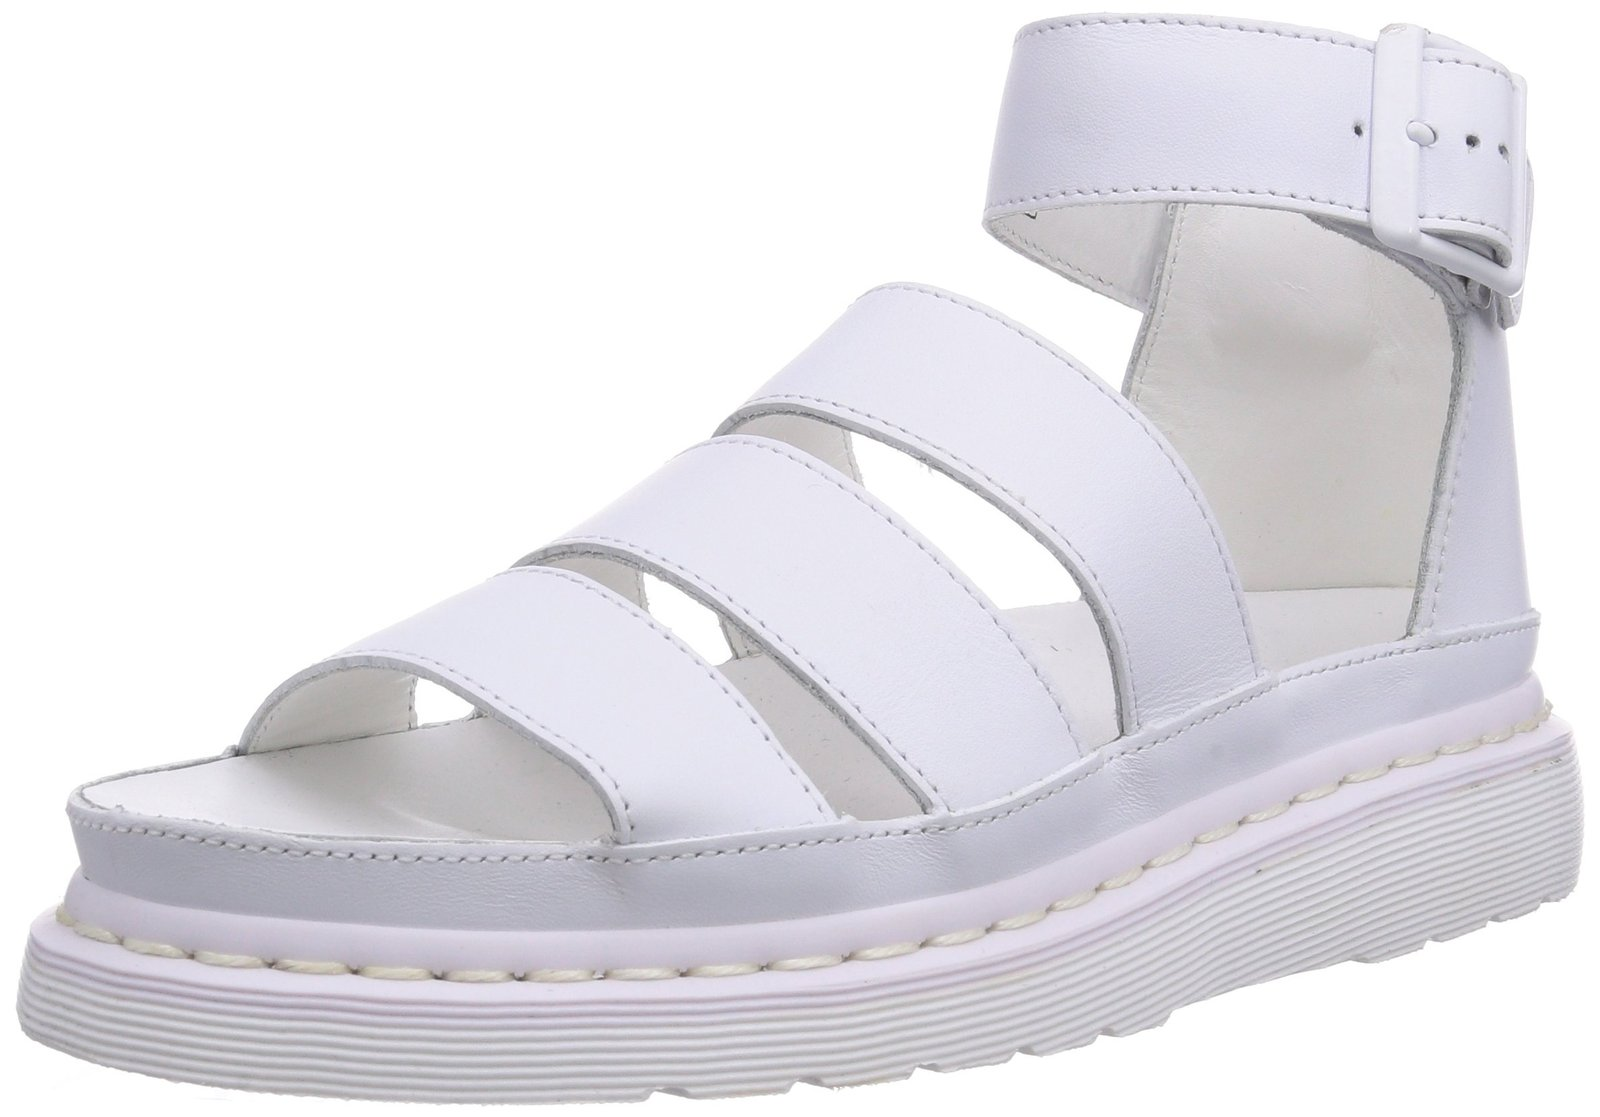 Dr. Martens Women's Clarissa Chunky Strap Casual Sandals, White Leather, 6 M UK,